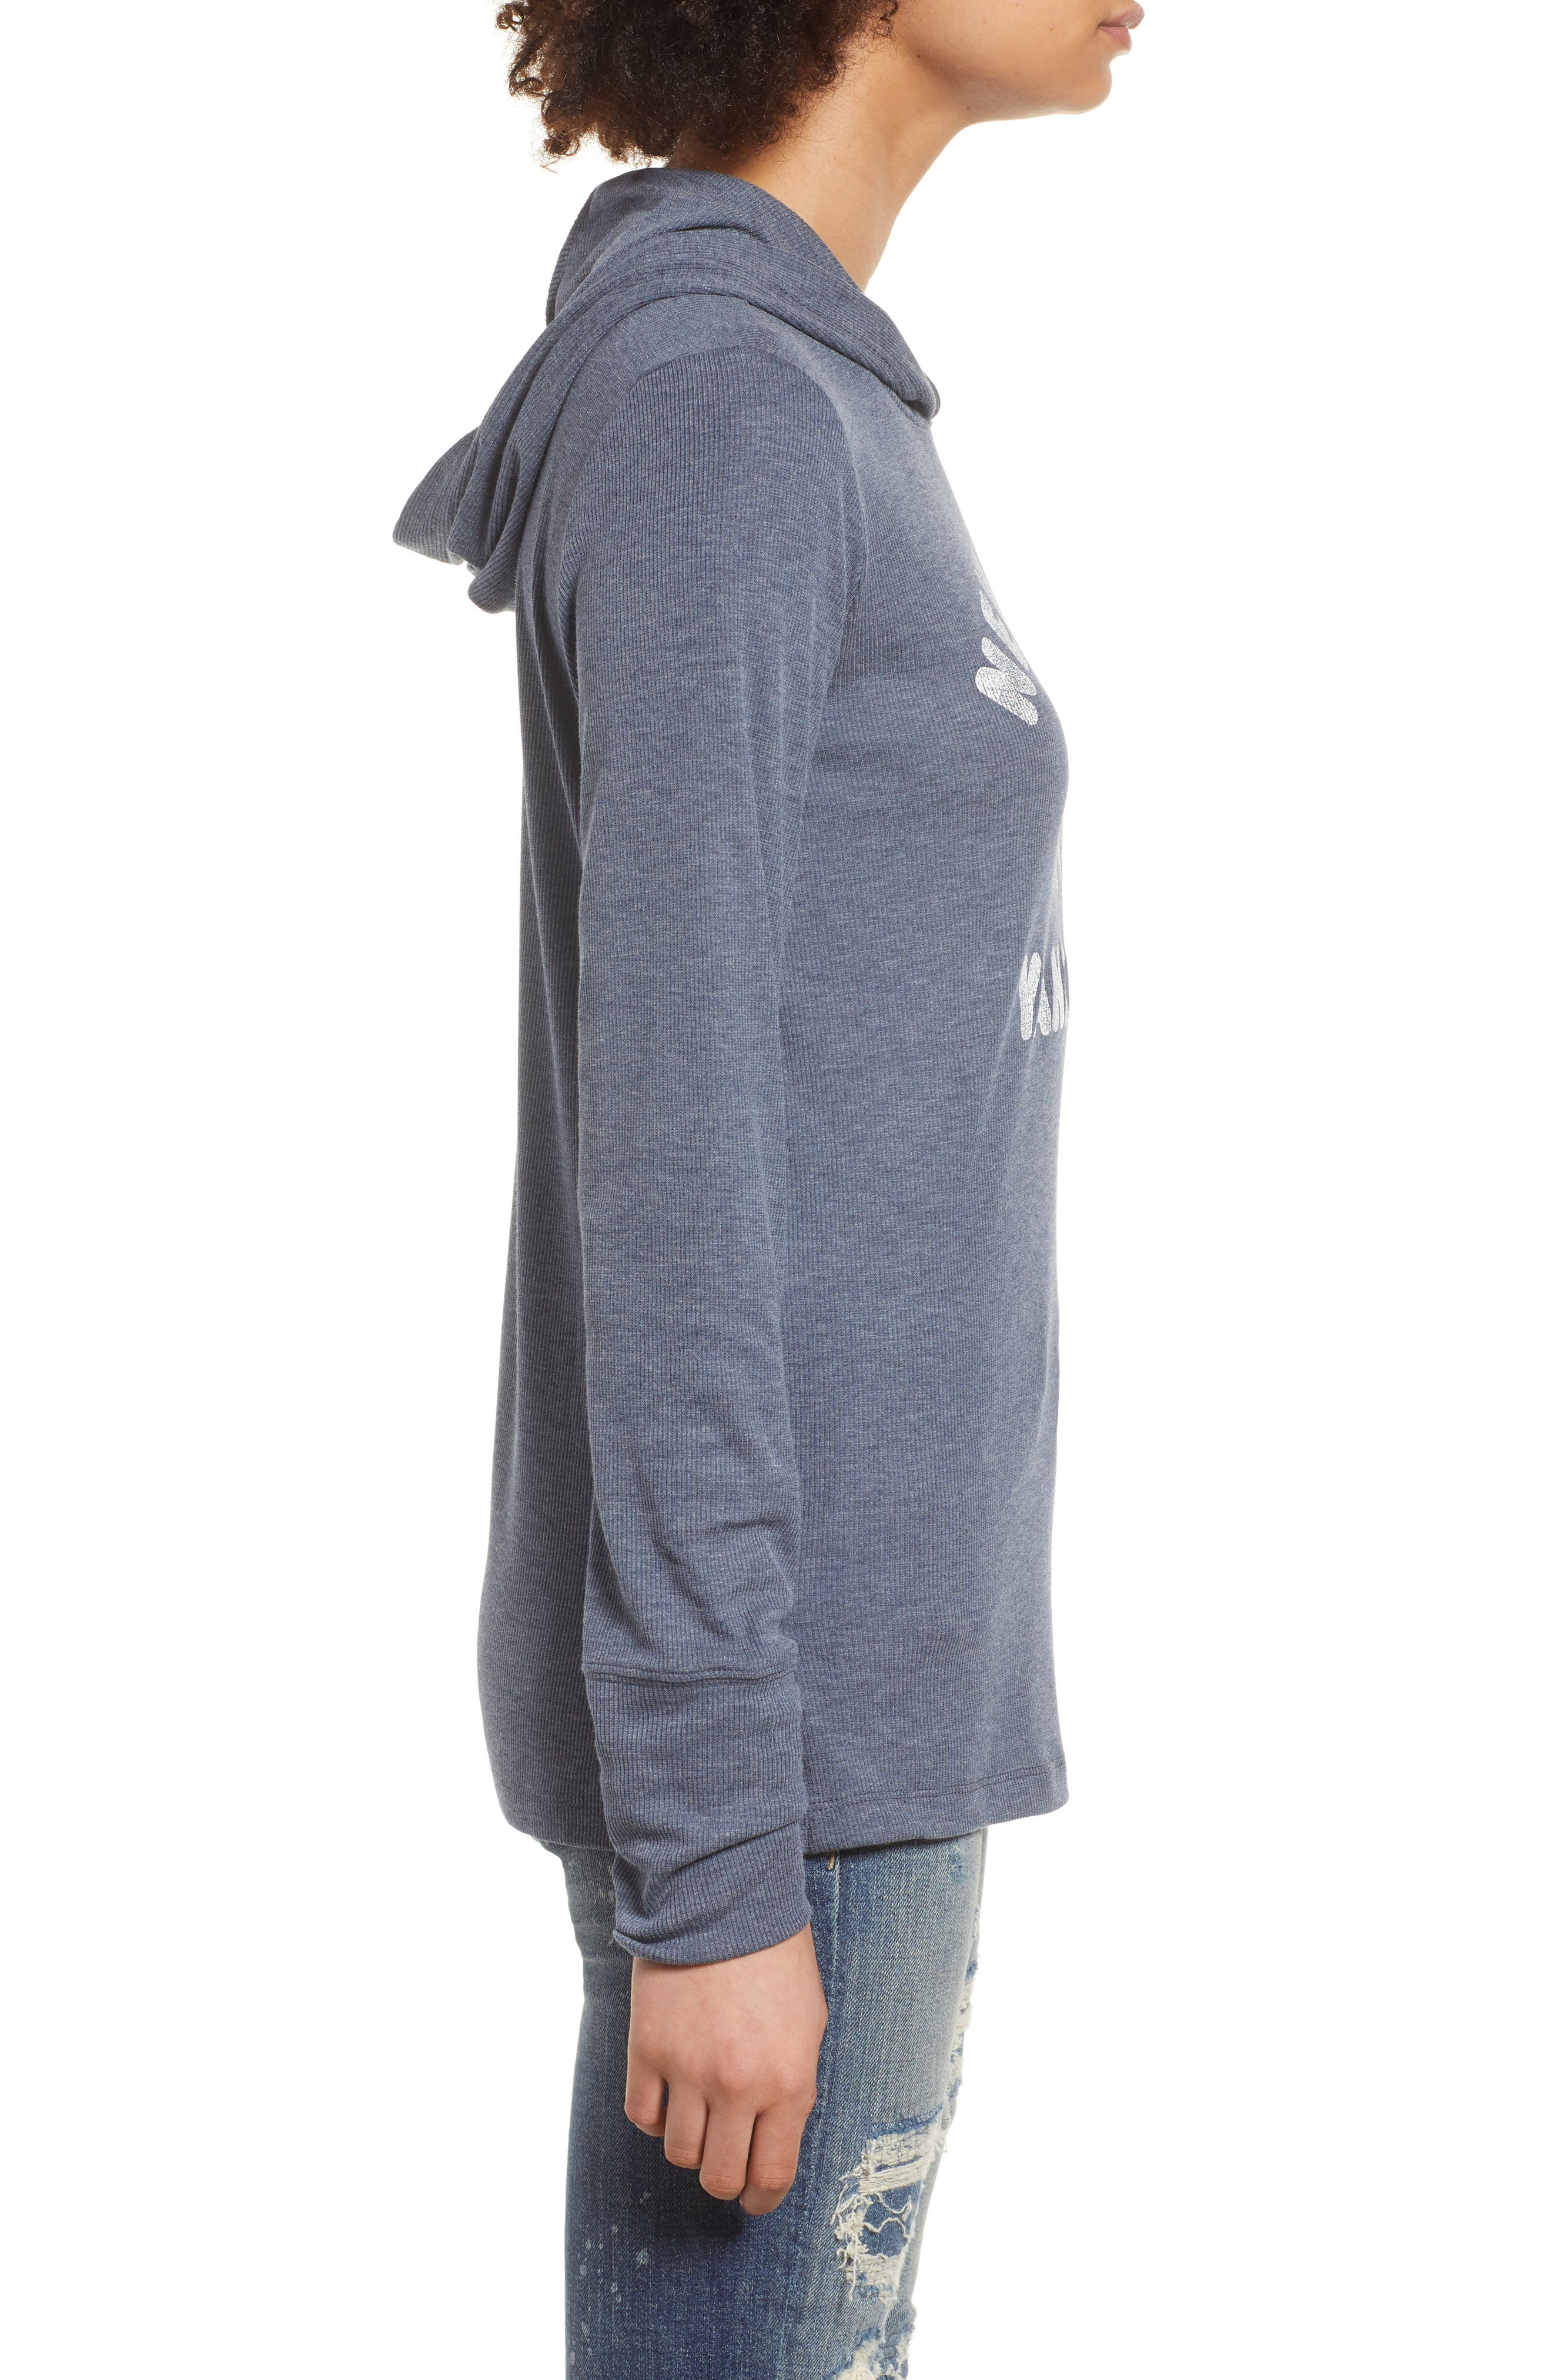 Campbell New York Yankees Rib Knit Hooded Top,                             Alternate thumbnail 3, color,                             Midnight